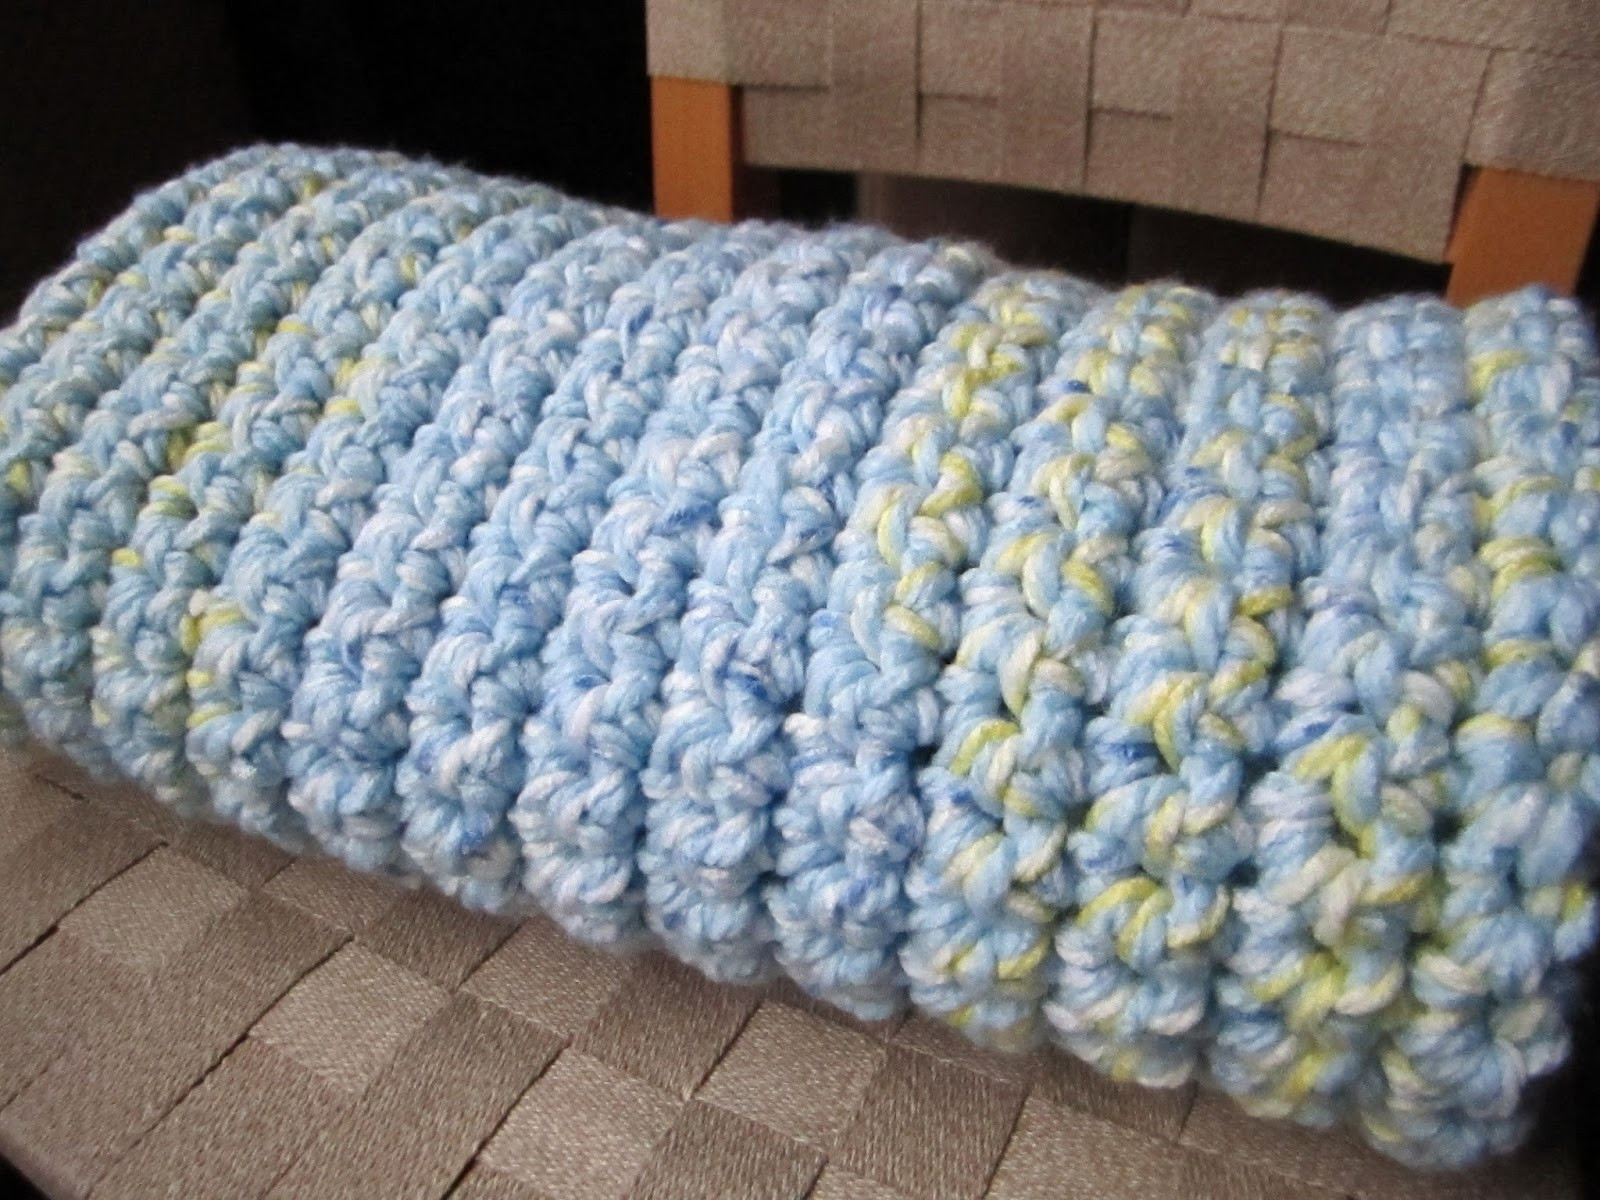 Chunky Yarn Patterns Awesome Inspire Me Grey Two Easy Crochet Baby Blankets Of Adorable 41 Photos Chunky Yarn Patterns